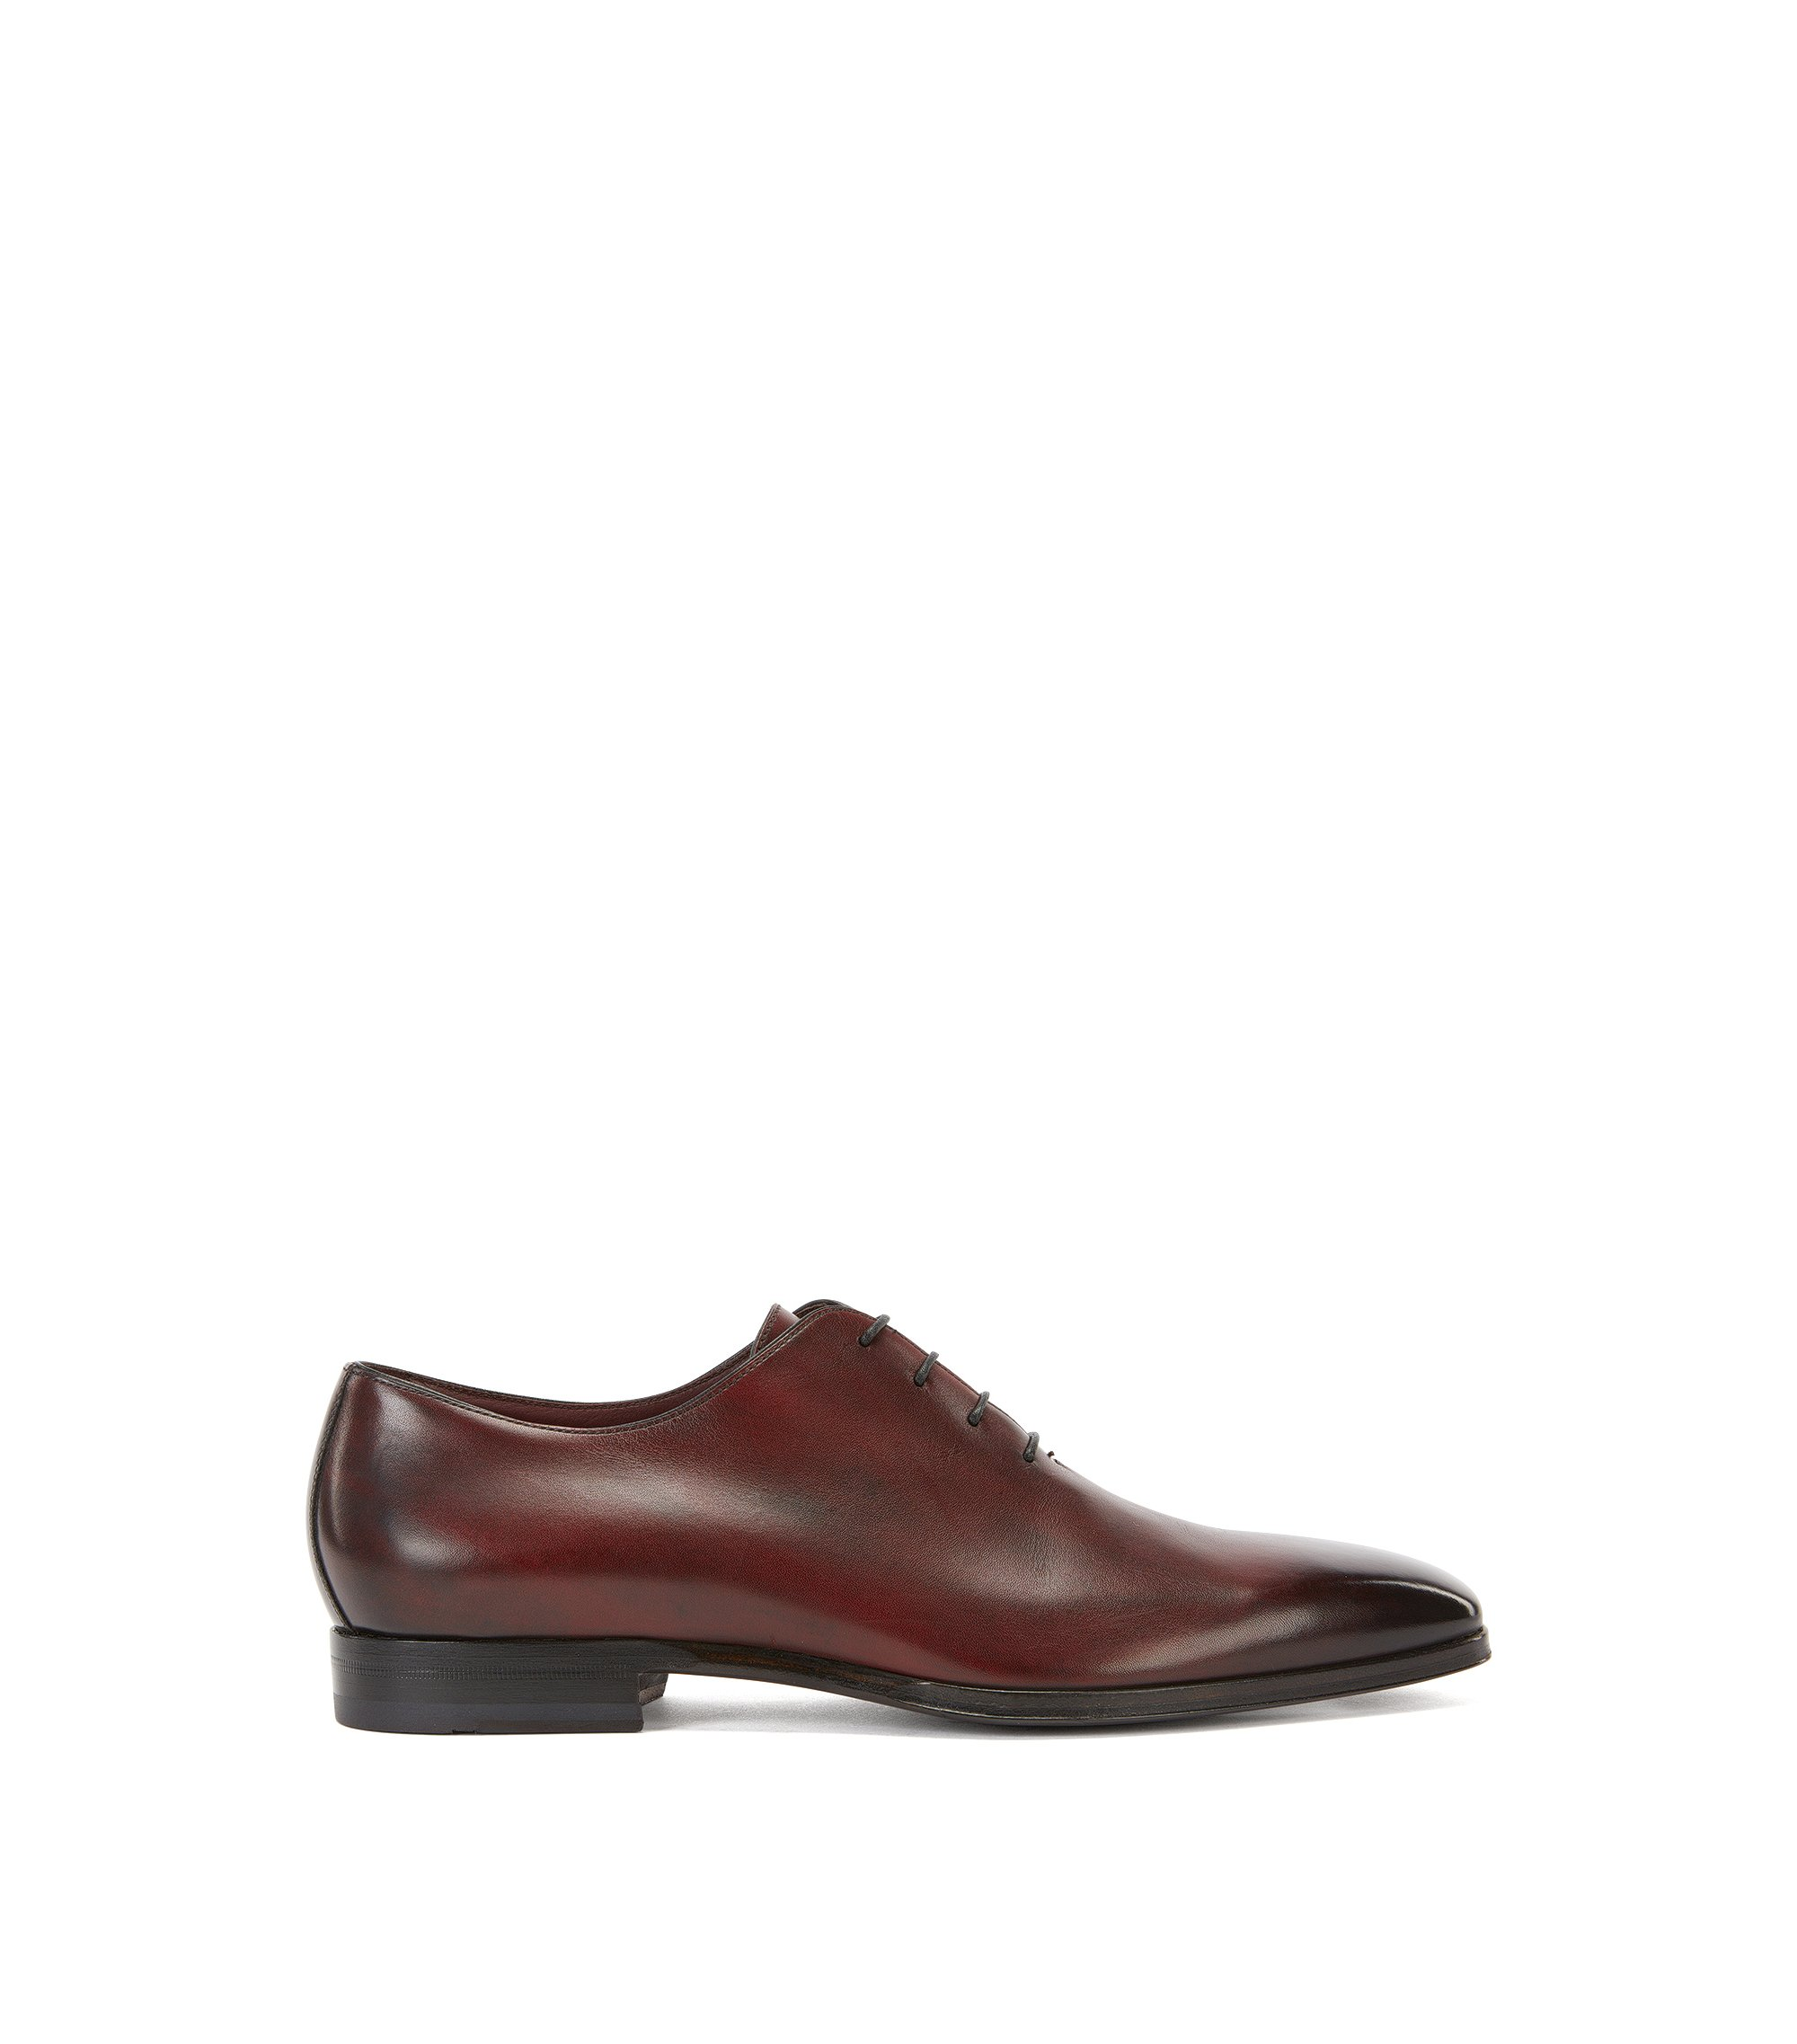 Chaussures Oxford BOSS Tailored en cuir poli, Rouge sombre